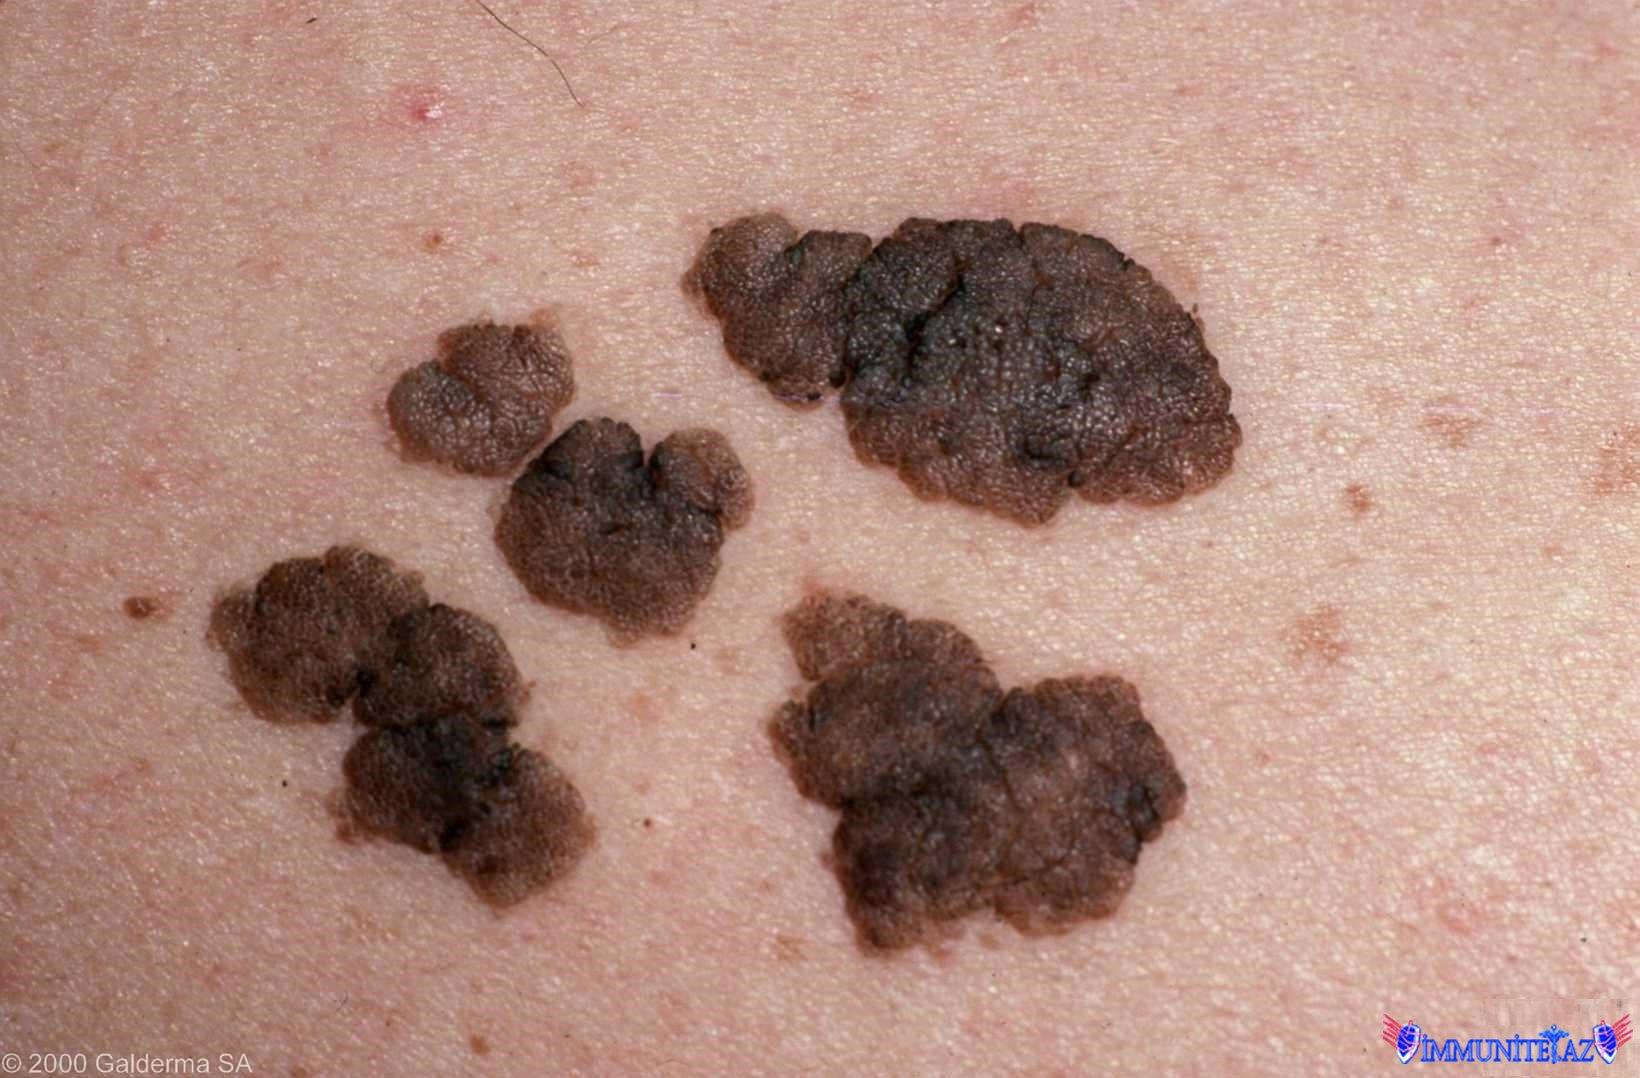 Epidermal nevus